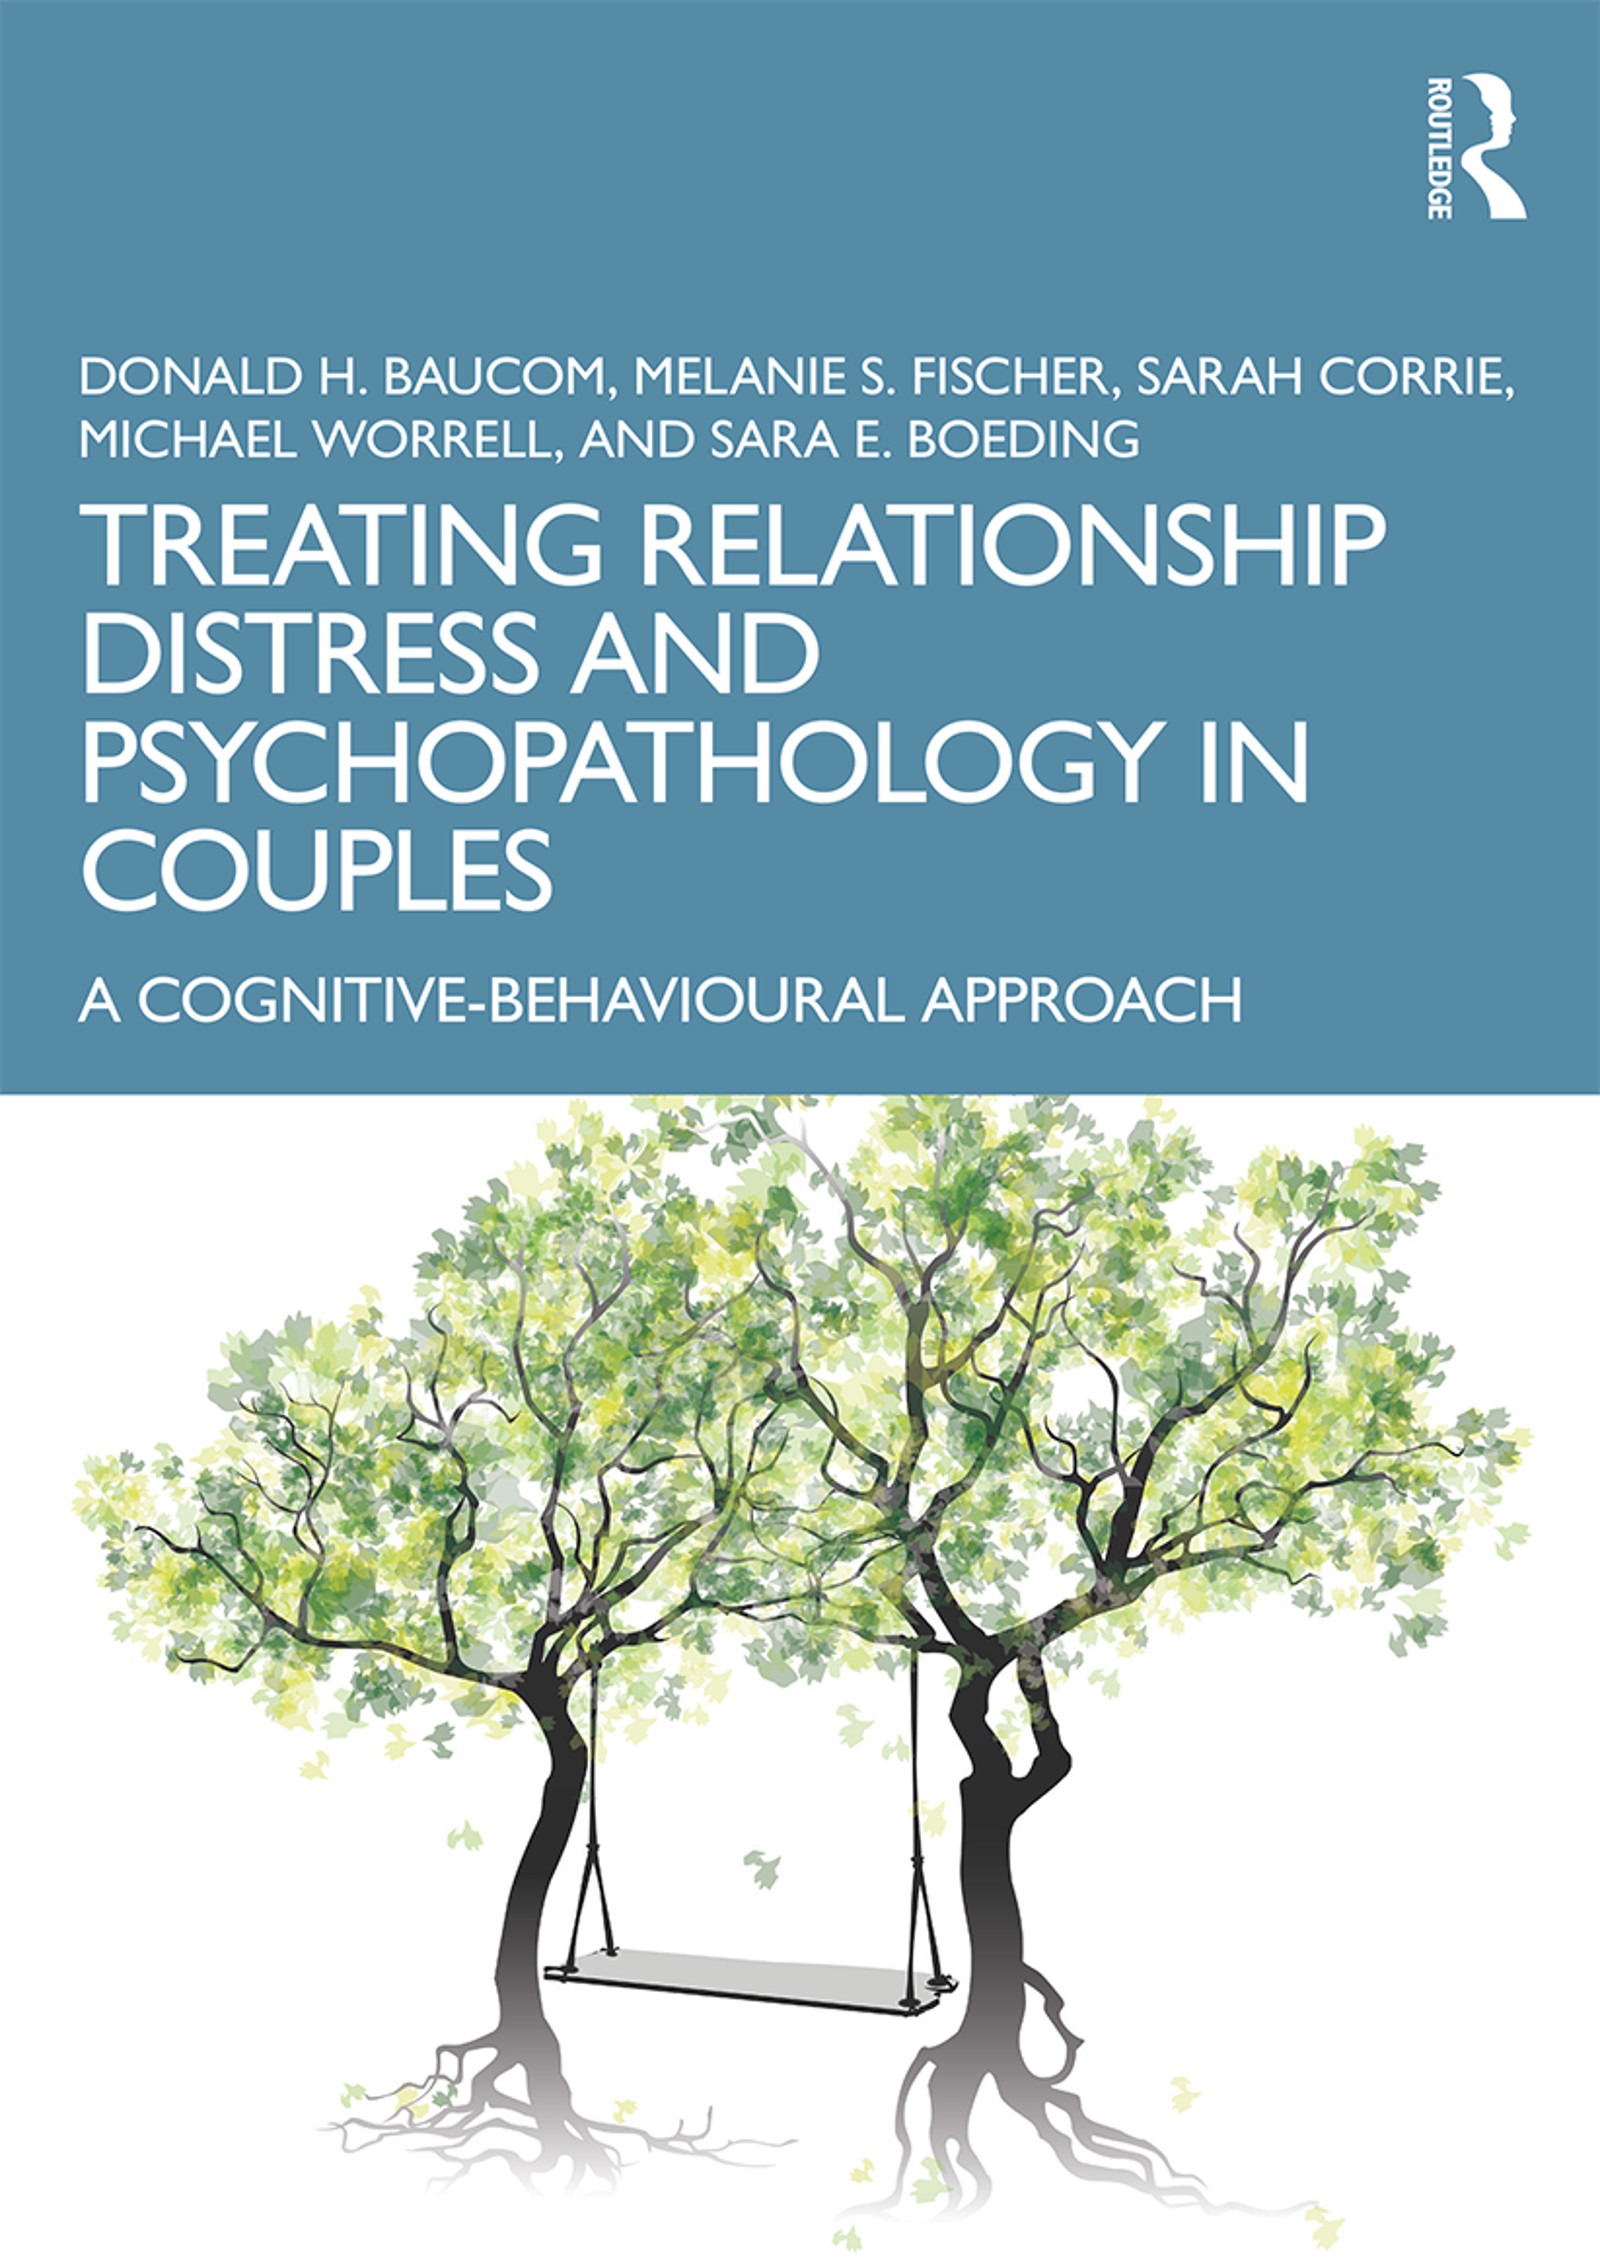 Treating Relationship Distress and Psychopathology in Couples: A Cognitive-Behavioural Approach book cover